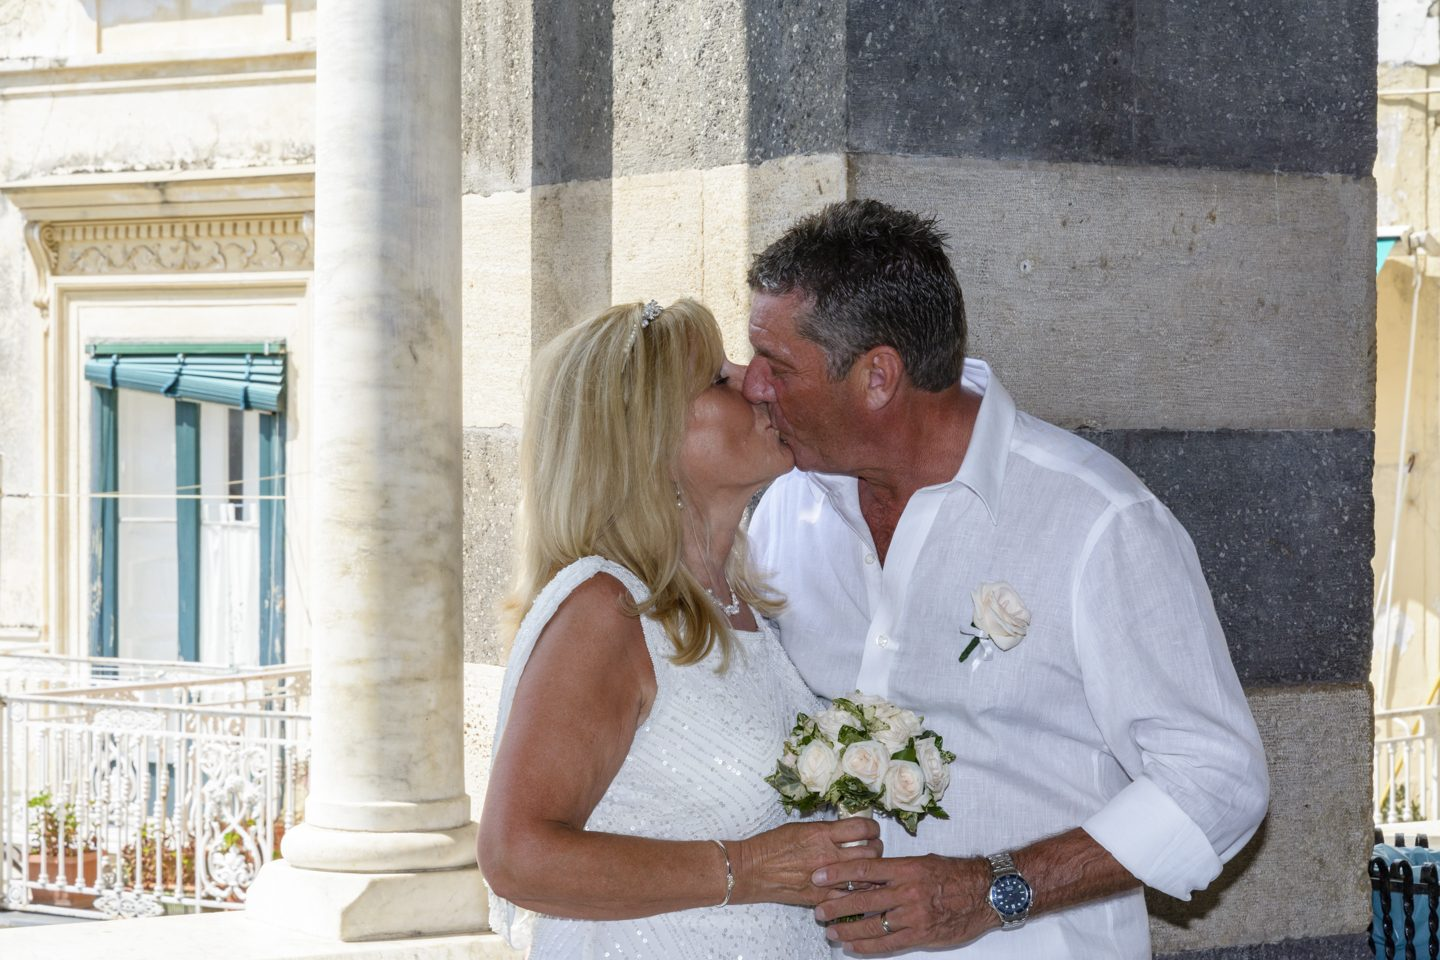 FineArt_Studio_Wedding_In_Amalfi_Paul&Lynne_Street_Duomo_Kiss2